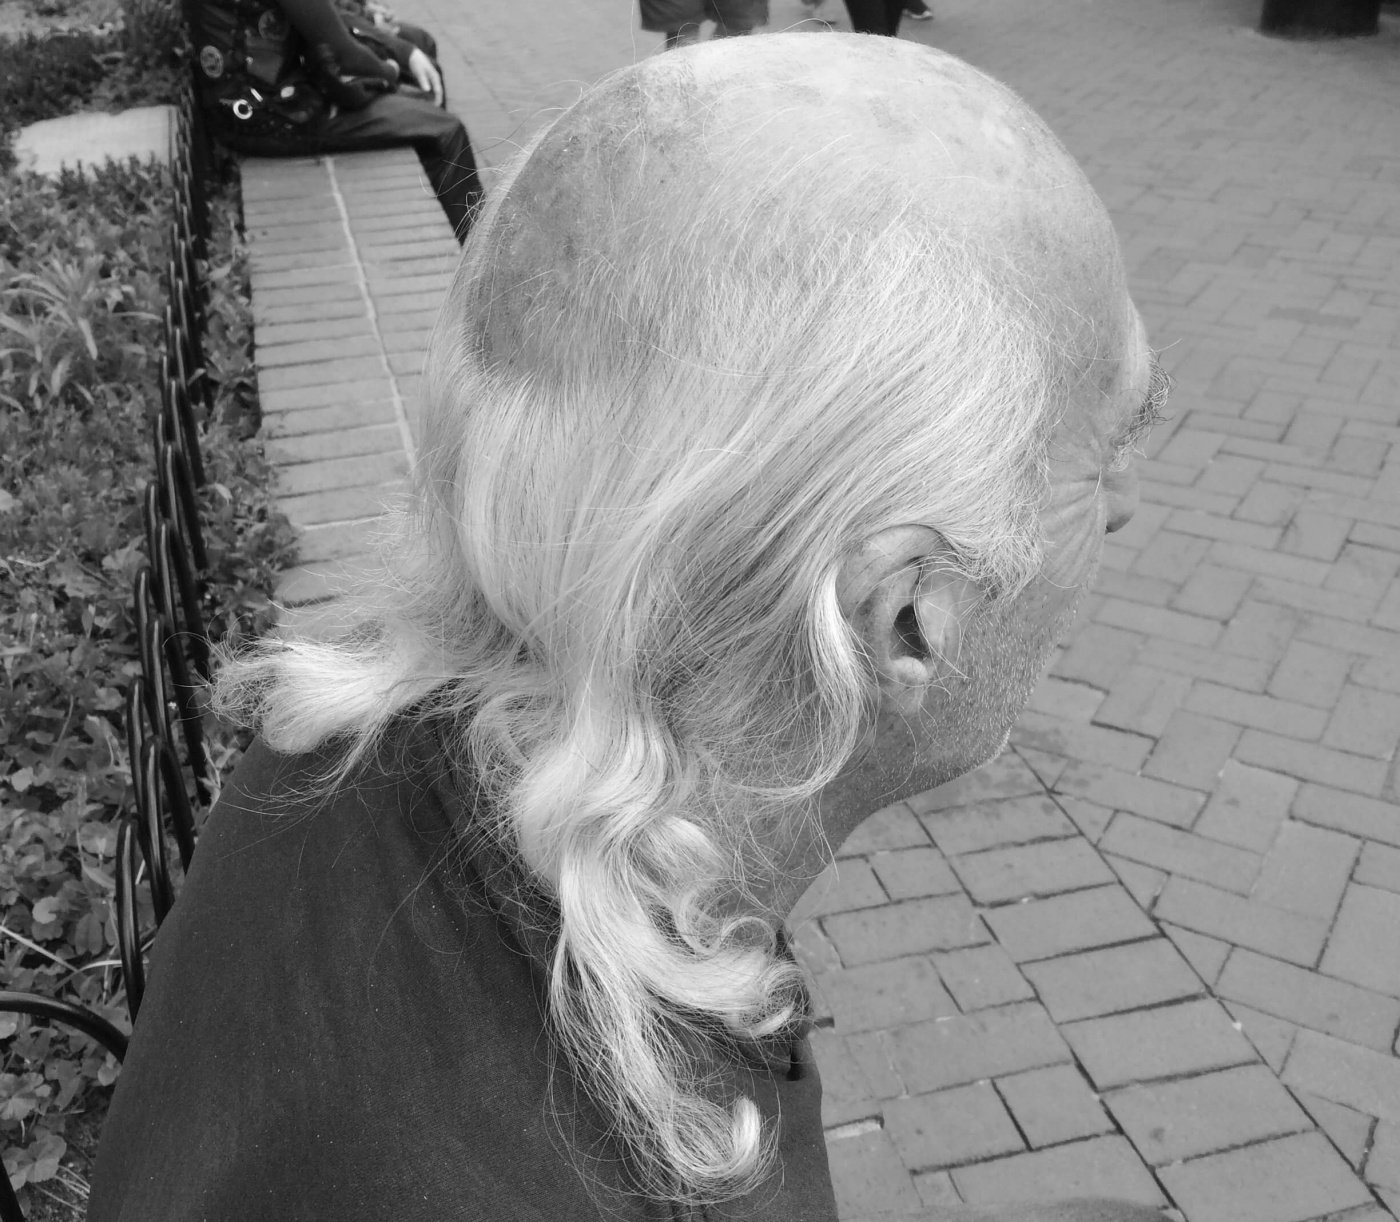 Old man losing his hair with long hair